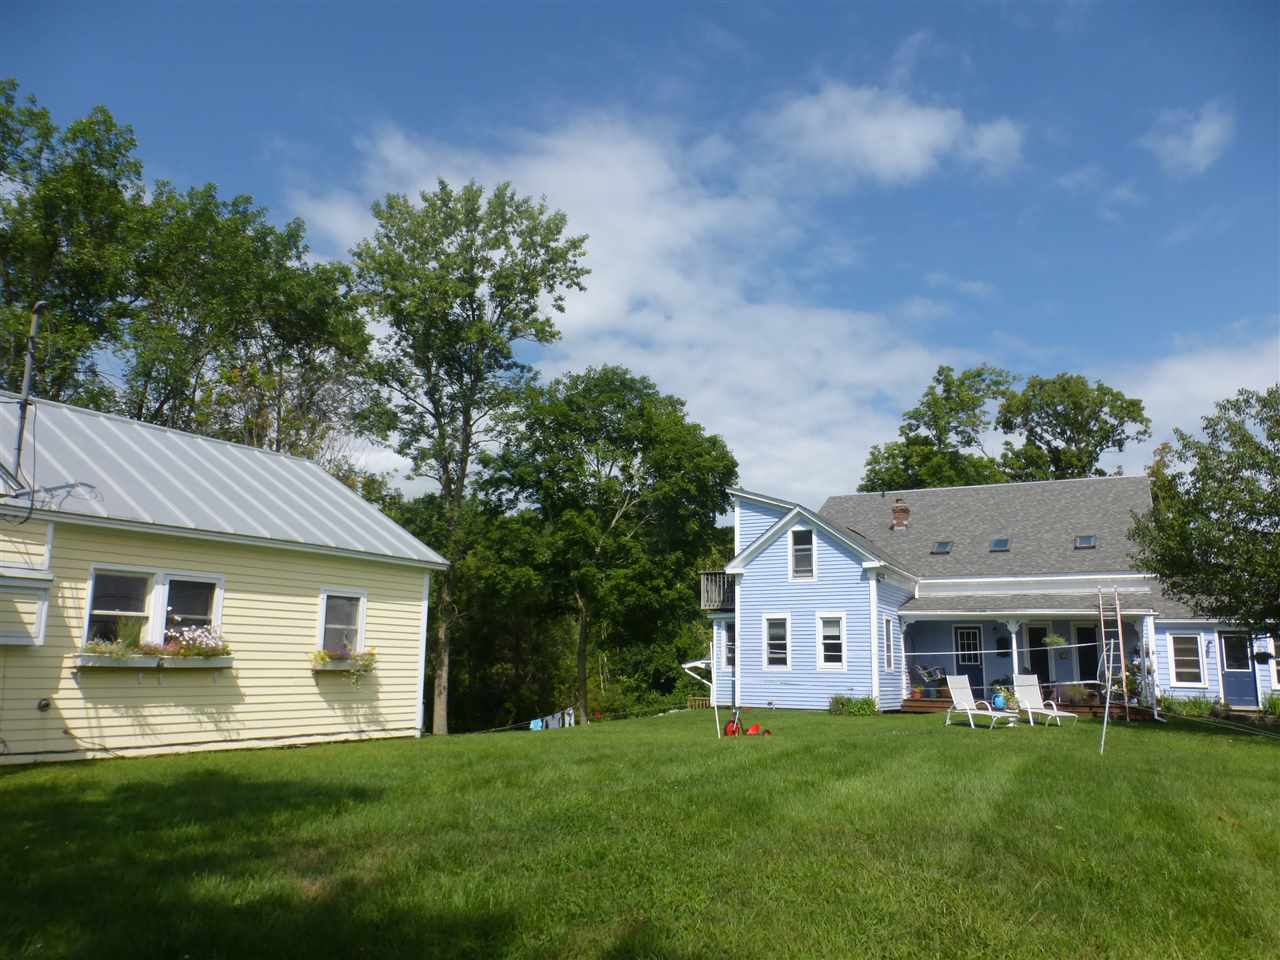 Unique Middlebury opportunity to have income from one or both houses on the 1A parcel in the country with Green Mountain views.  Very versatile the contemporary farmhouse features a 1 BR in –law suite which can be just that or used as an Air BNB.  It has rented for $850/mo. or between $50-$89 per night.  The one level ranch house has 1 bedroom, 1 bath & rents for $1,025/mo.  Current tenant is month to month.  The fun & eclectic farmhouse has interesting angles, skylights, windows & rooms, with 2 bedrooms & 2 baths.  It also has 2 decks & south facing porch great for enjoying the 1 A yard.  Plenty of room for gardening.  Attached workshop on the south end of ranch.